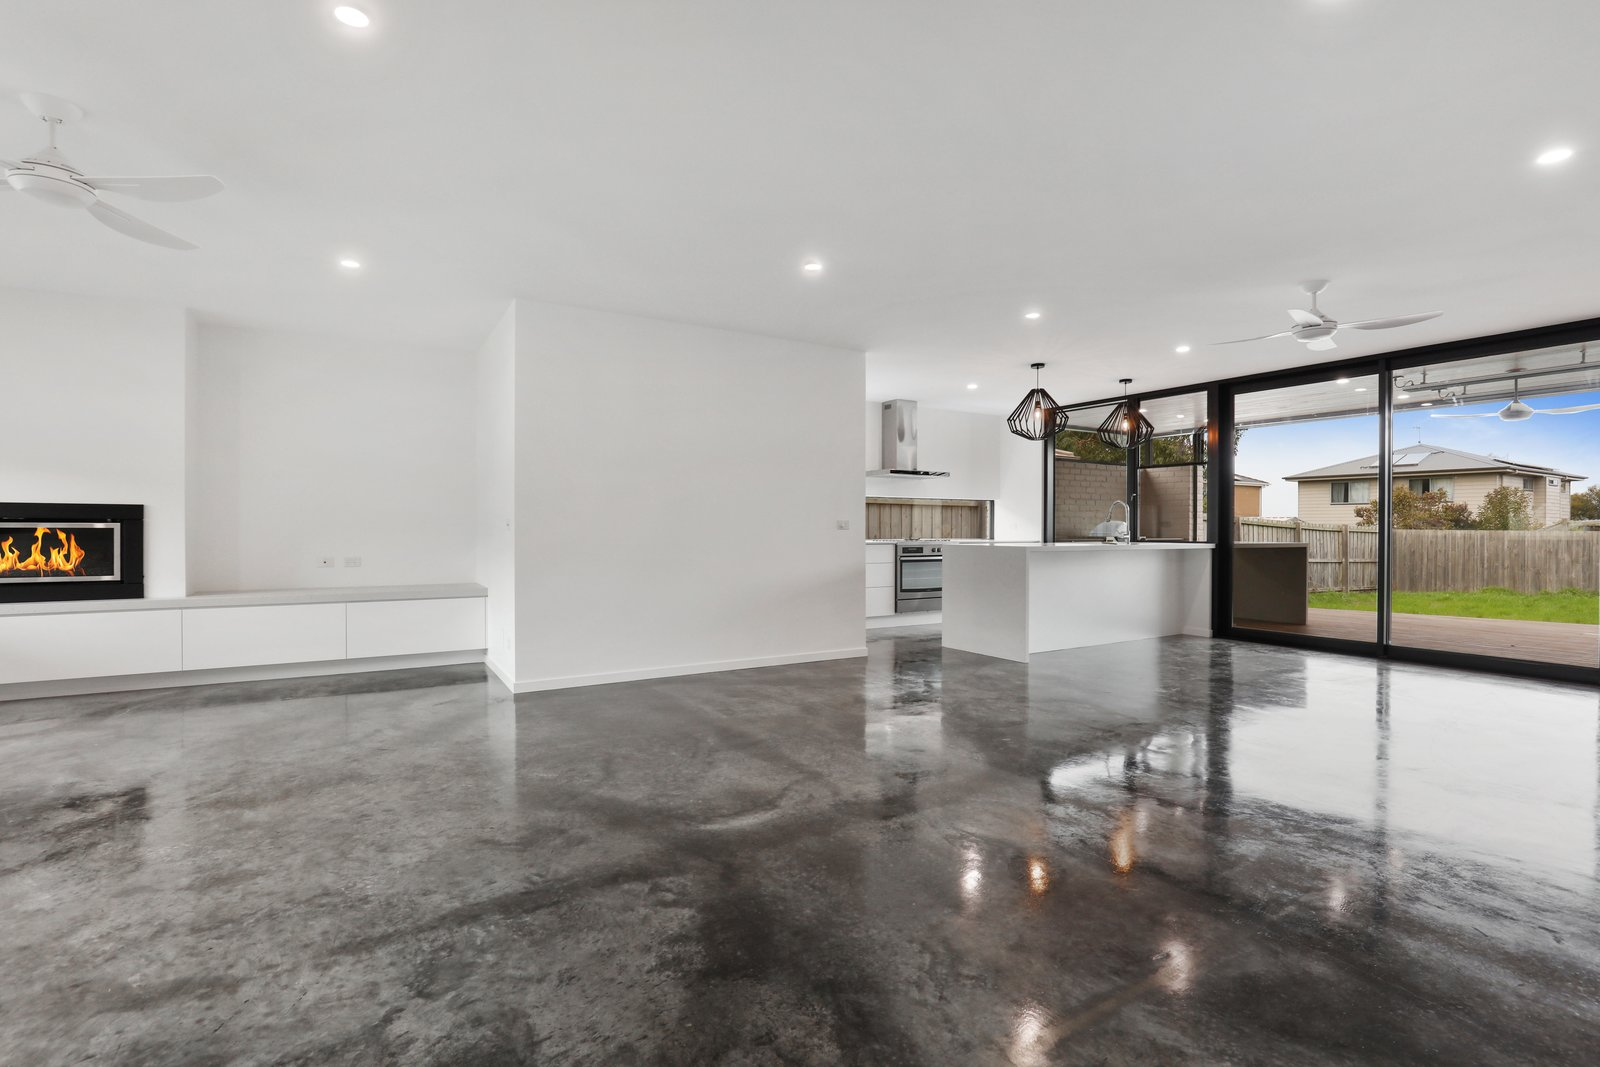 Living Room, Gas Burning Fireplace, Recessed Lighting, and Concrete Floor  Tamara Crecsent by Inverloch 3996